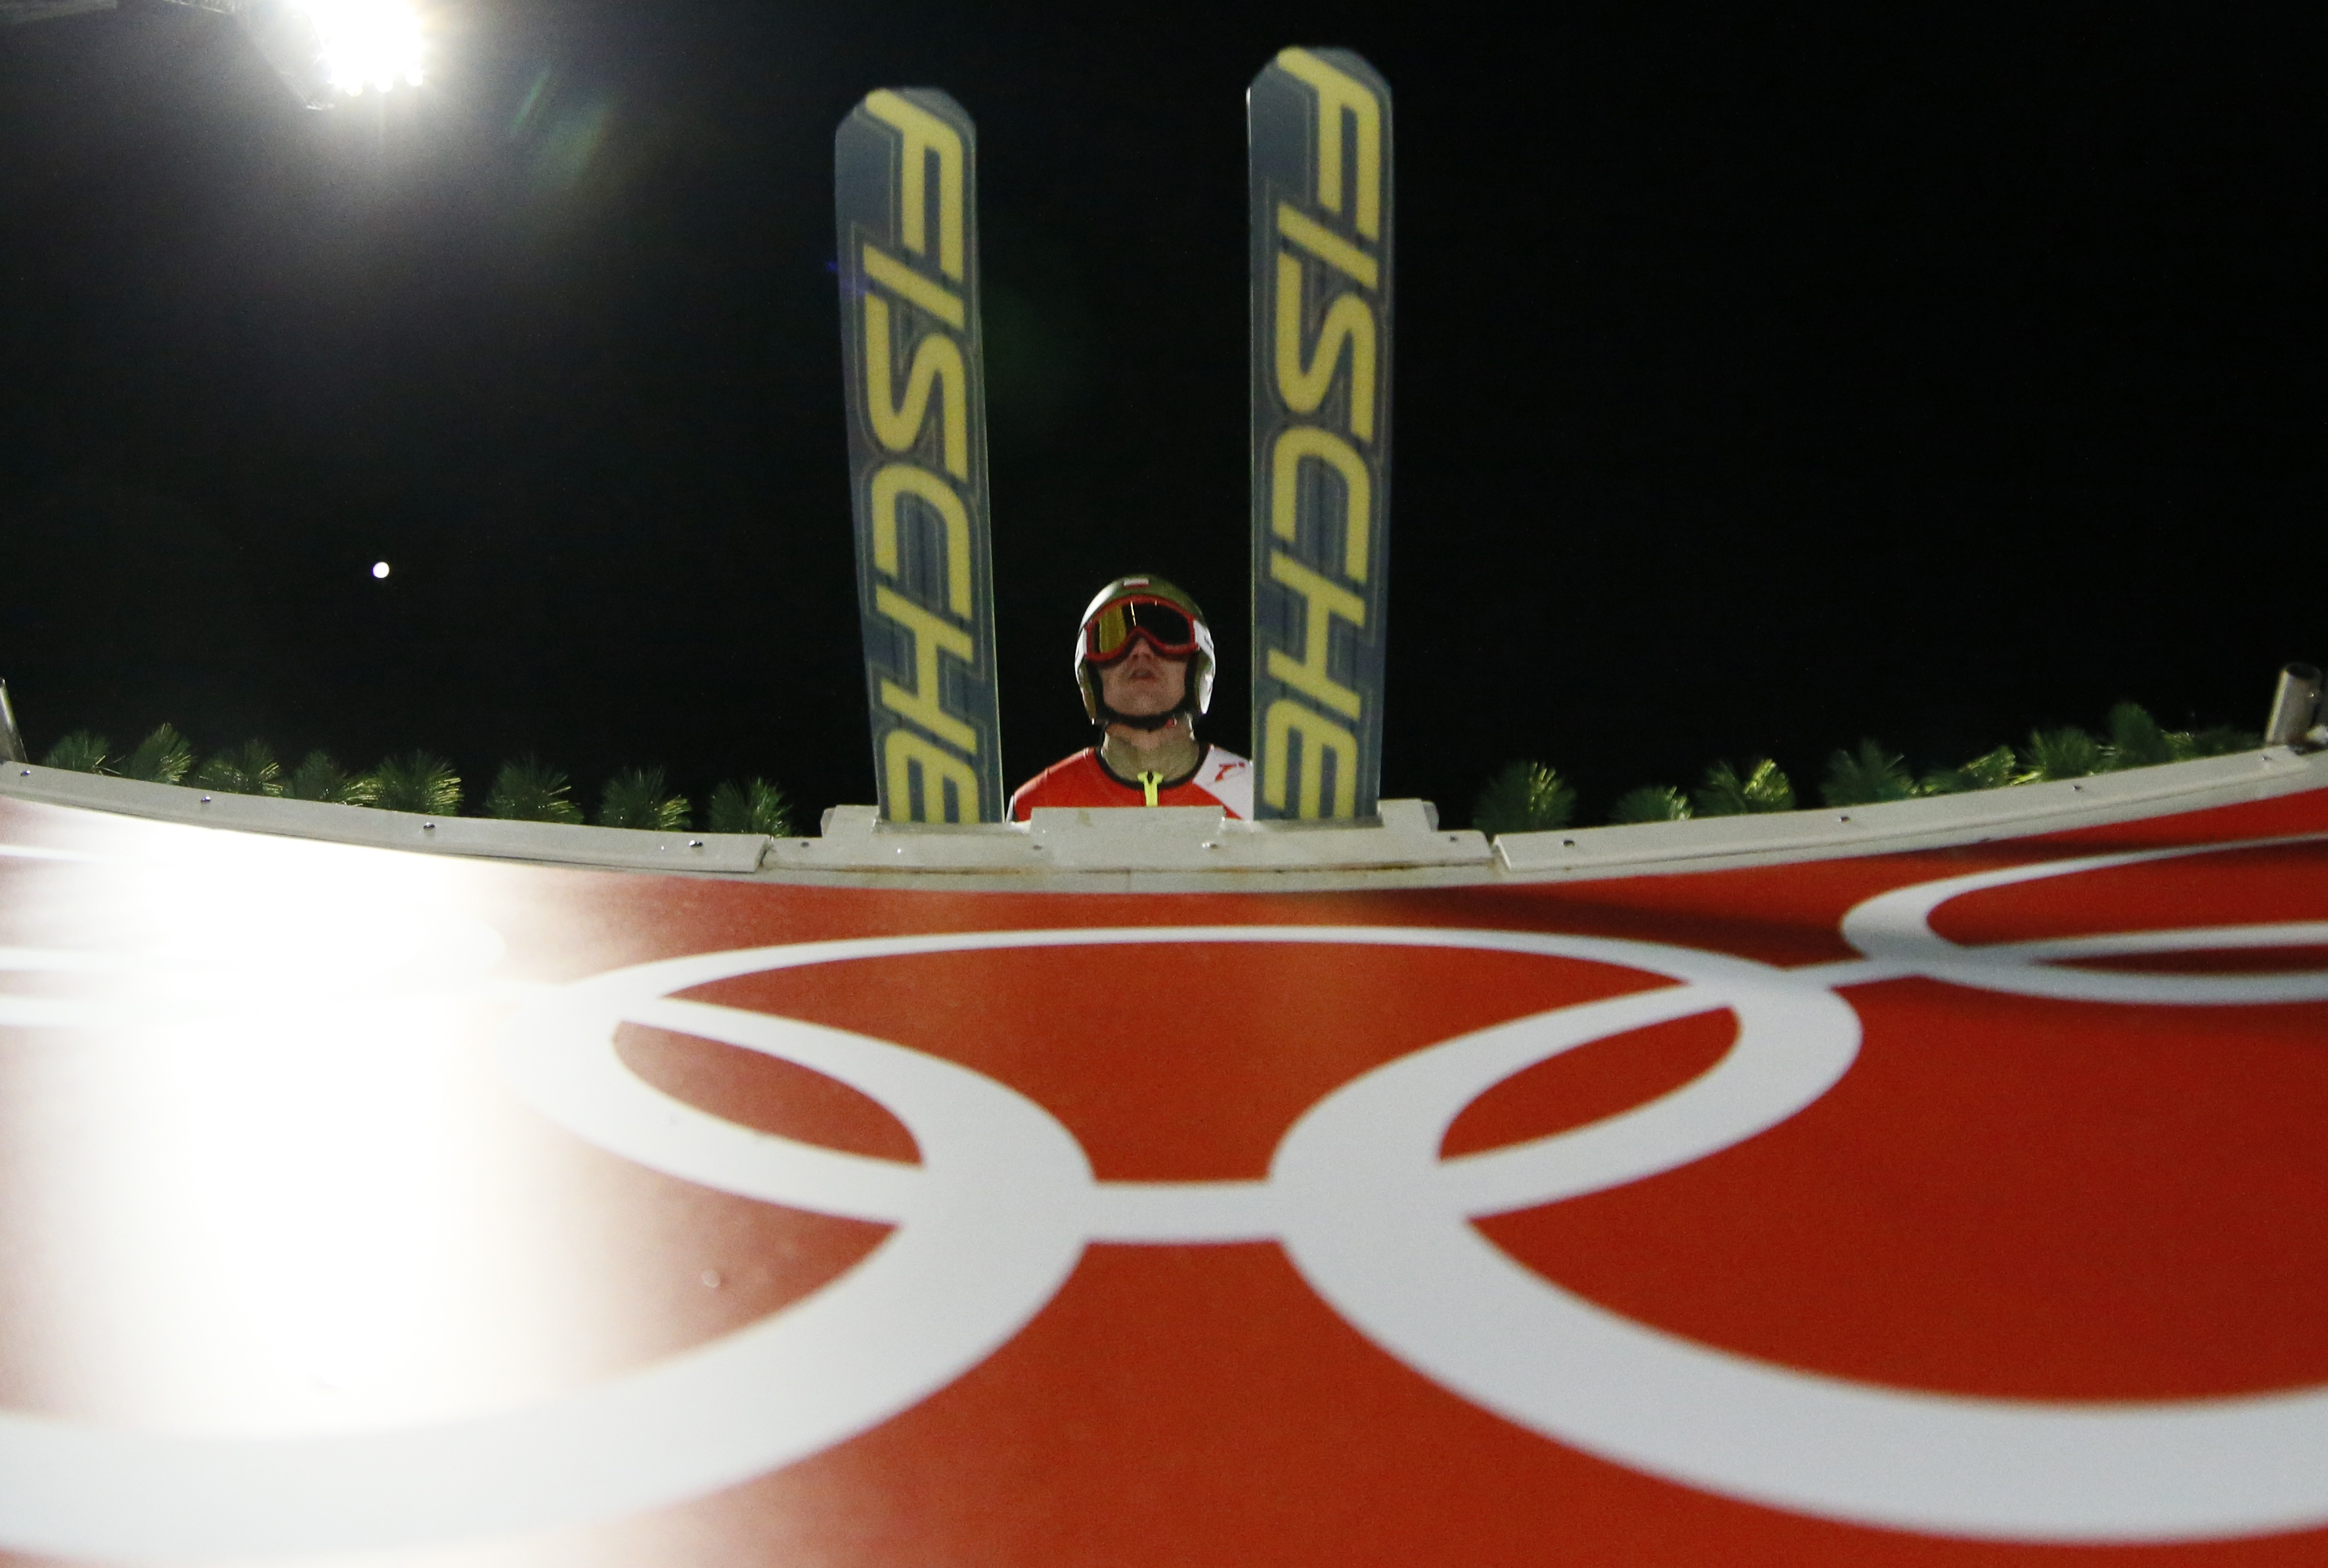 Poland's Kamil Stoch makes his jump during the men's large hill ski jumping training session at the 2014 Winter Olympics, Wednesday, Feb. 12, 2014, in Krasnaya Polyana, Russia. (AP Photo/Dmitry Lovetsky)